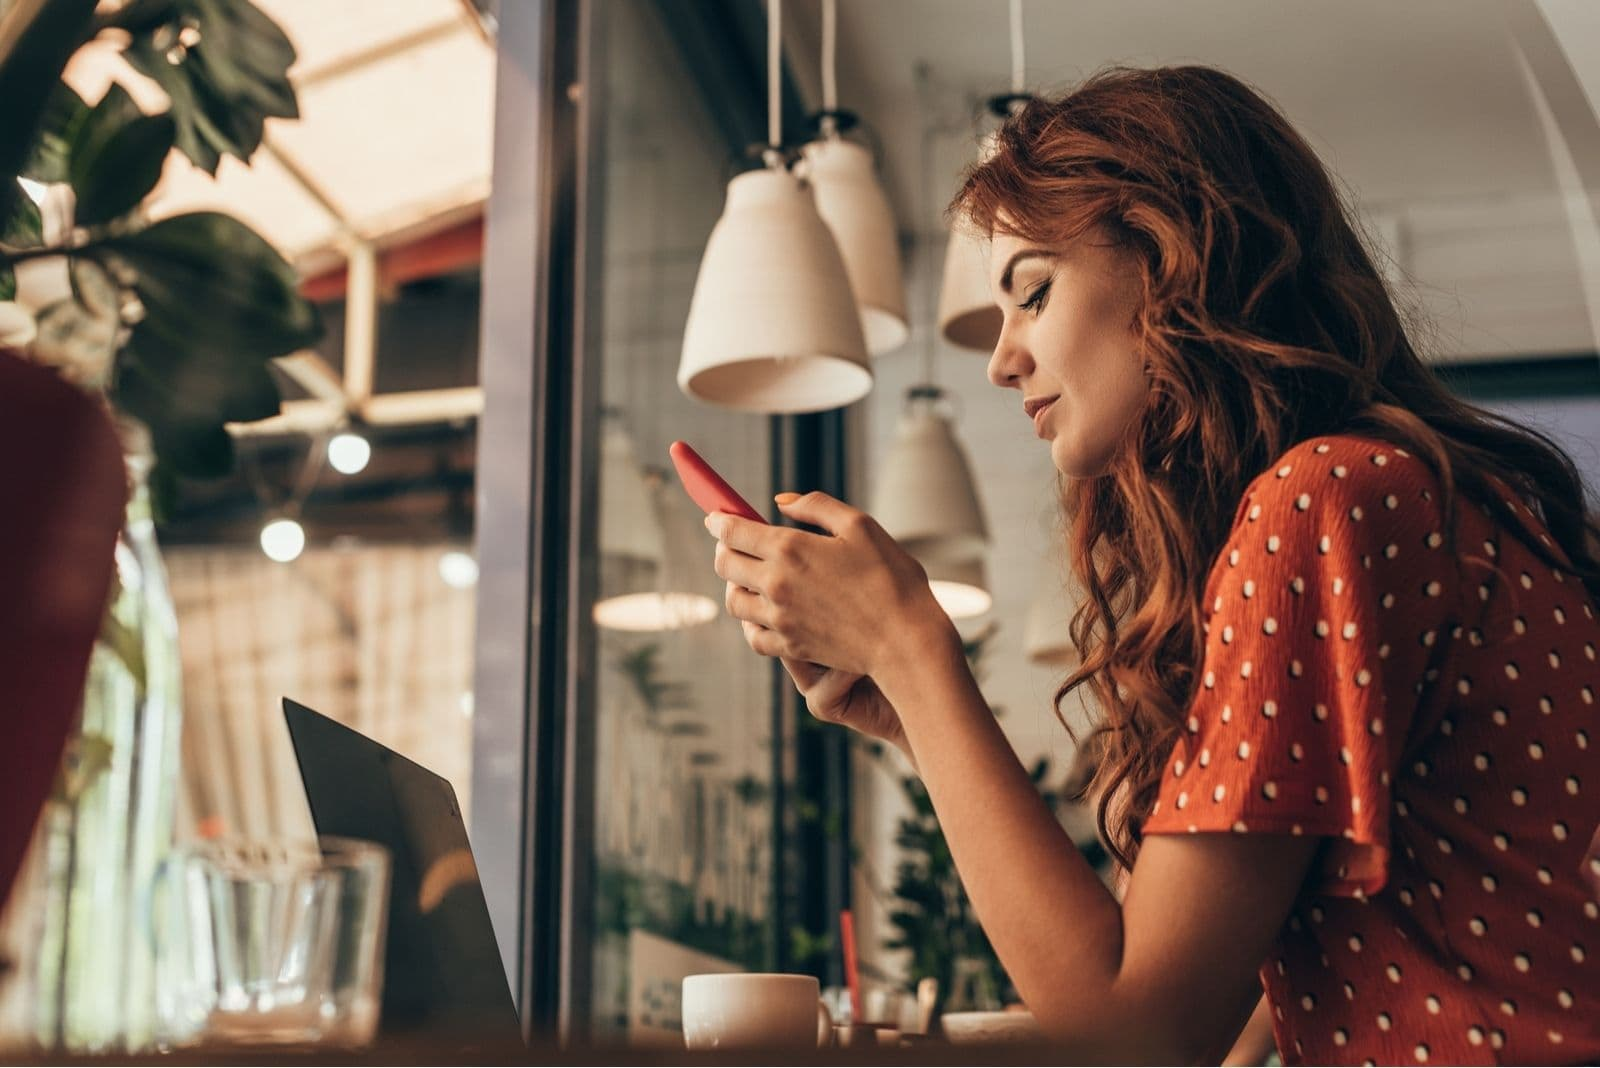 woman busy looking at her smartphone in sideview sitting inside a cafe